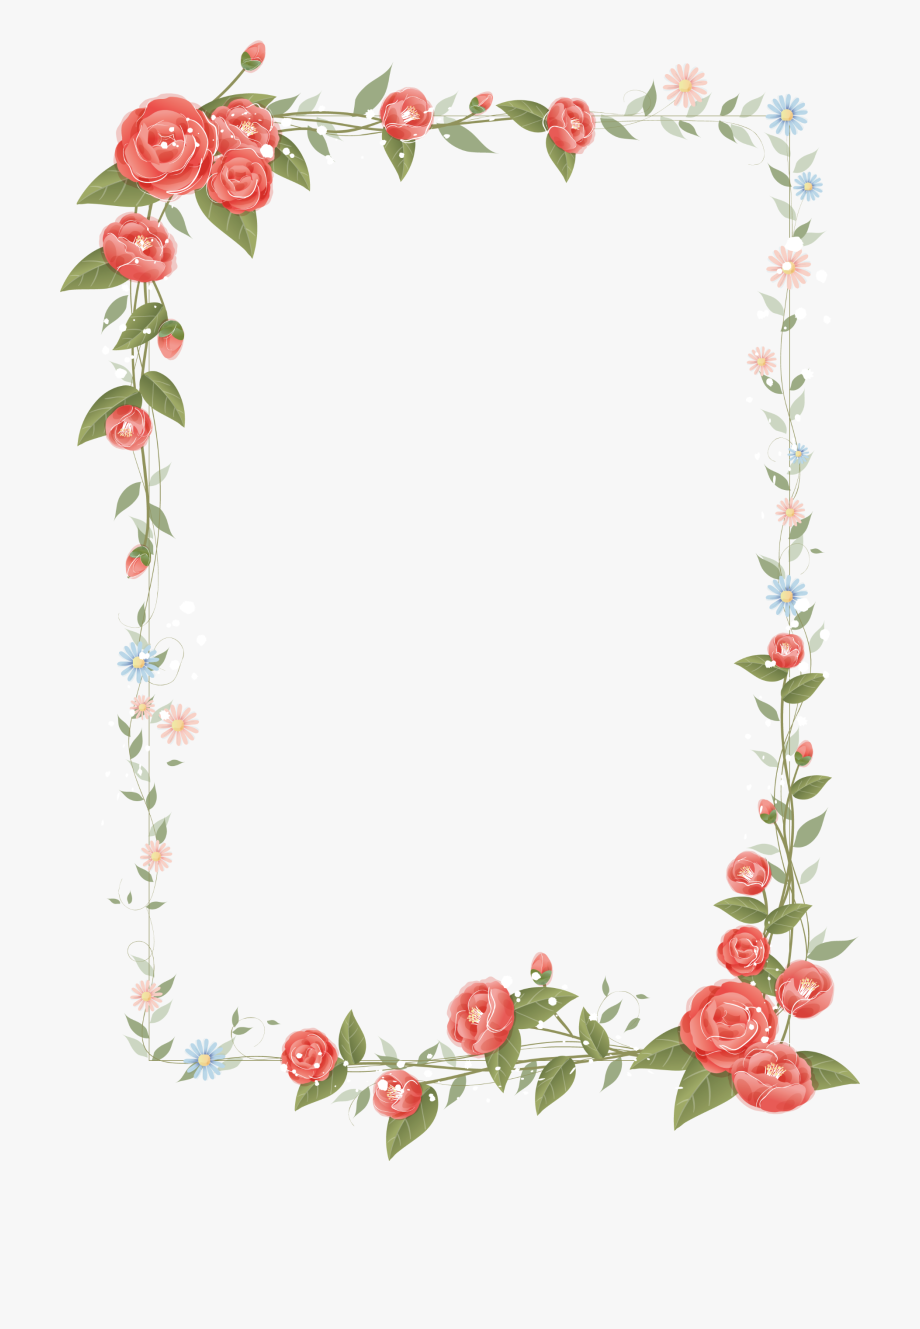 Download And Share Rose Frame Design Floral Flowers Border Clipart Border Flower Frame Design Cartoo Flower Border Clipart Flower Boarders Flower Border Png